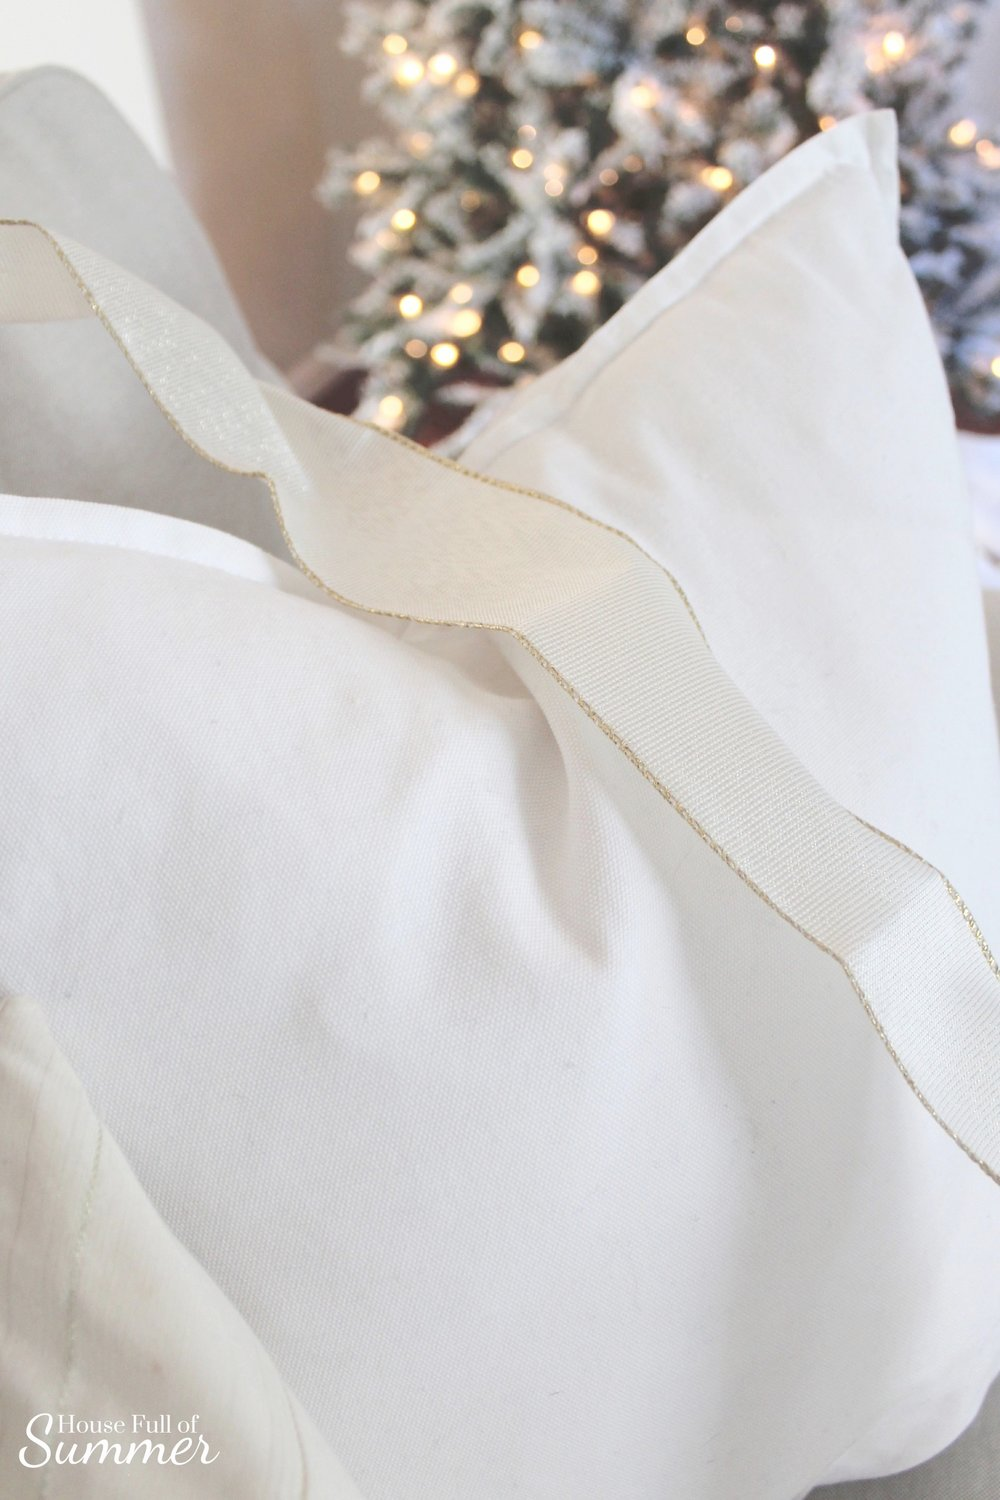 Simple DIY Christmas Present Throw Pillow | House Full of Summer blog - holidays, christmas decor ideas, coastal christmas, white christmas decor, glam christmas, gold and white christmas decor, ribbon, coastal chic christmas, quick and easy decorating tips